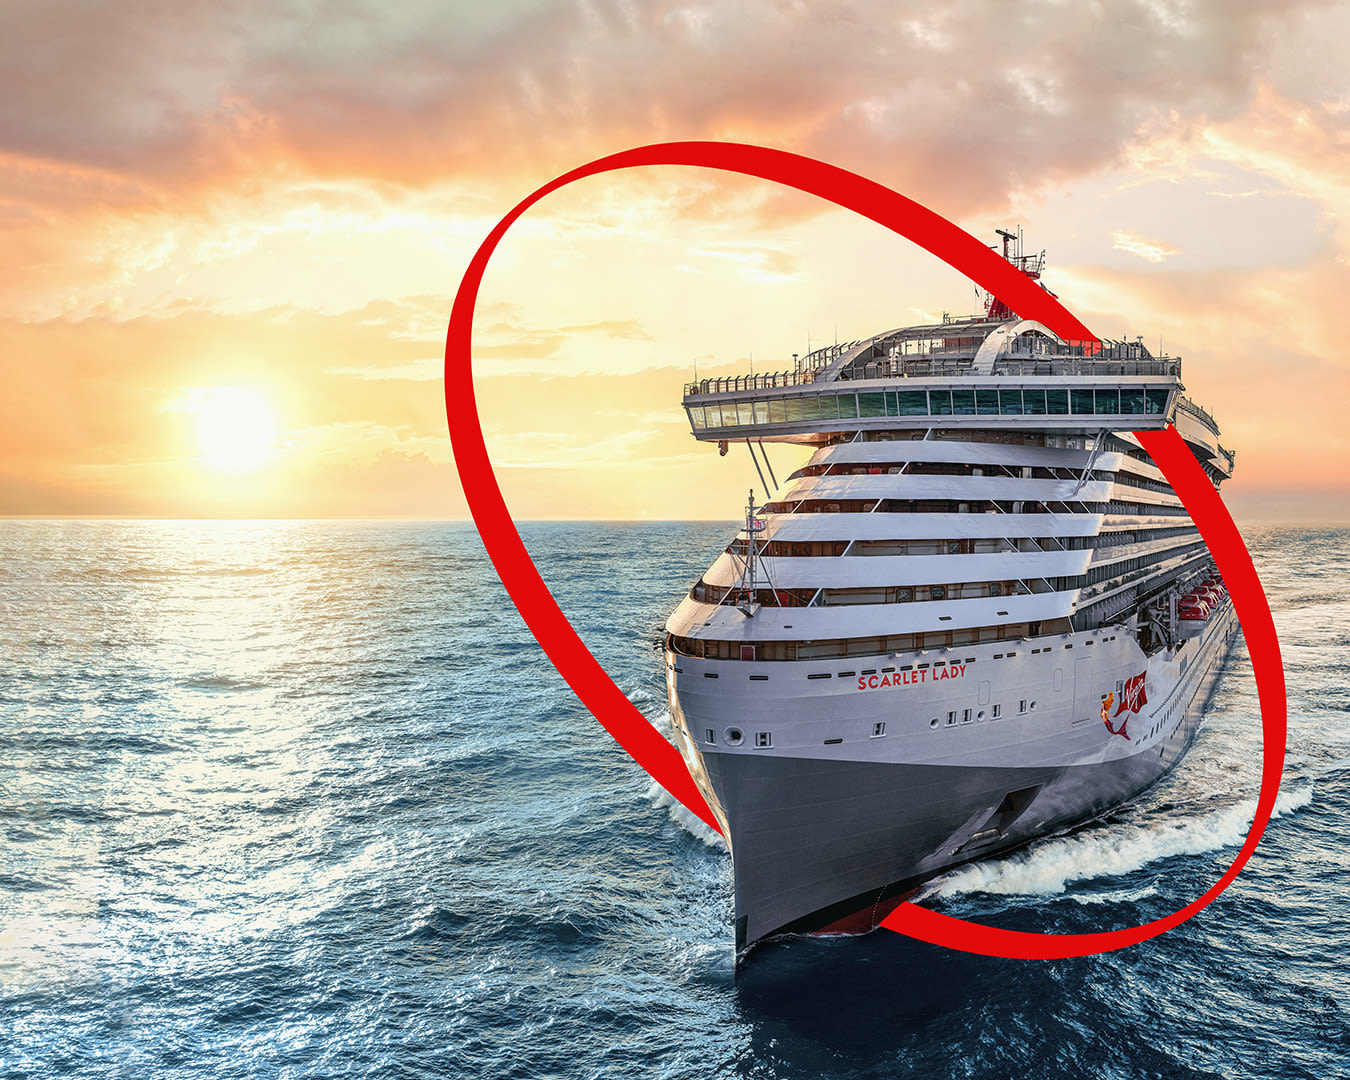 Virgin Voyages ship Scarlet Lady with the Virgin Red inner circle